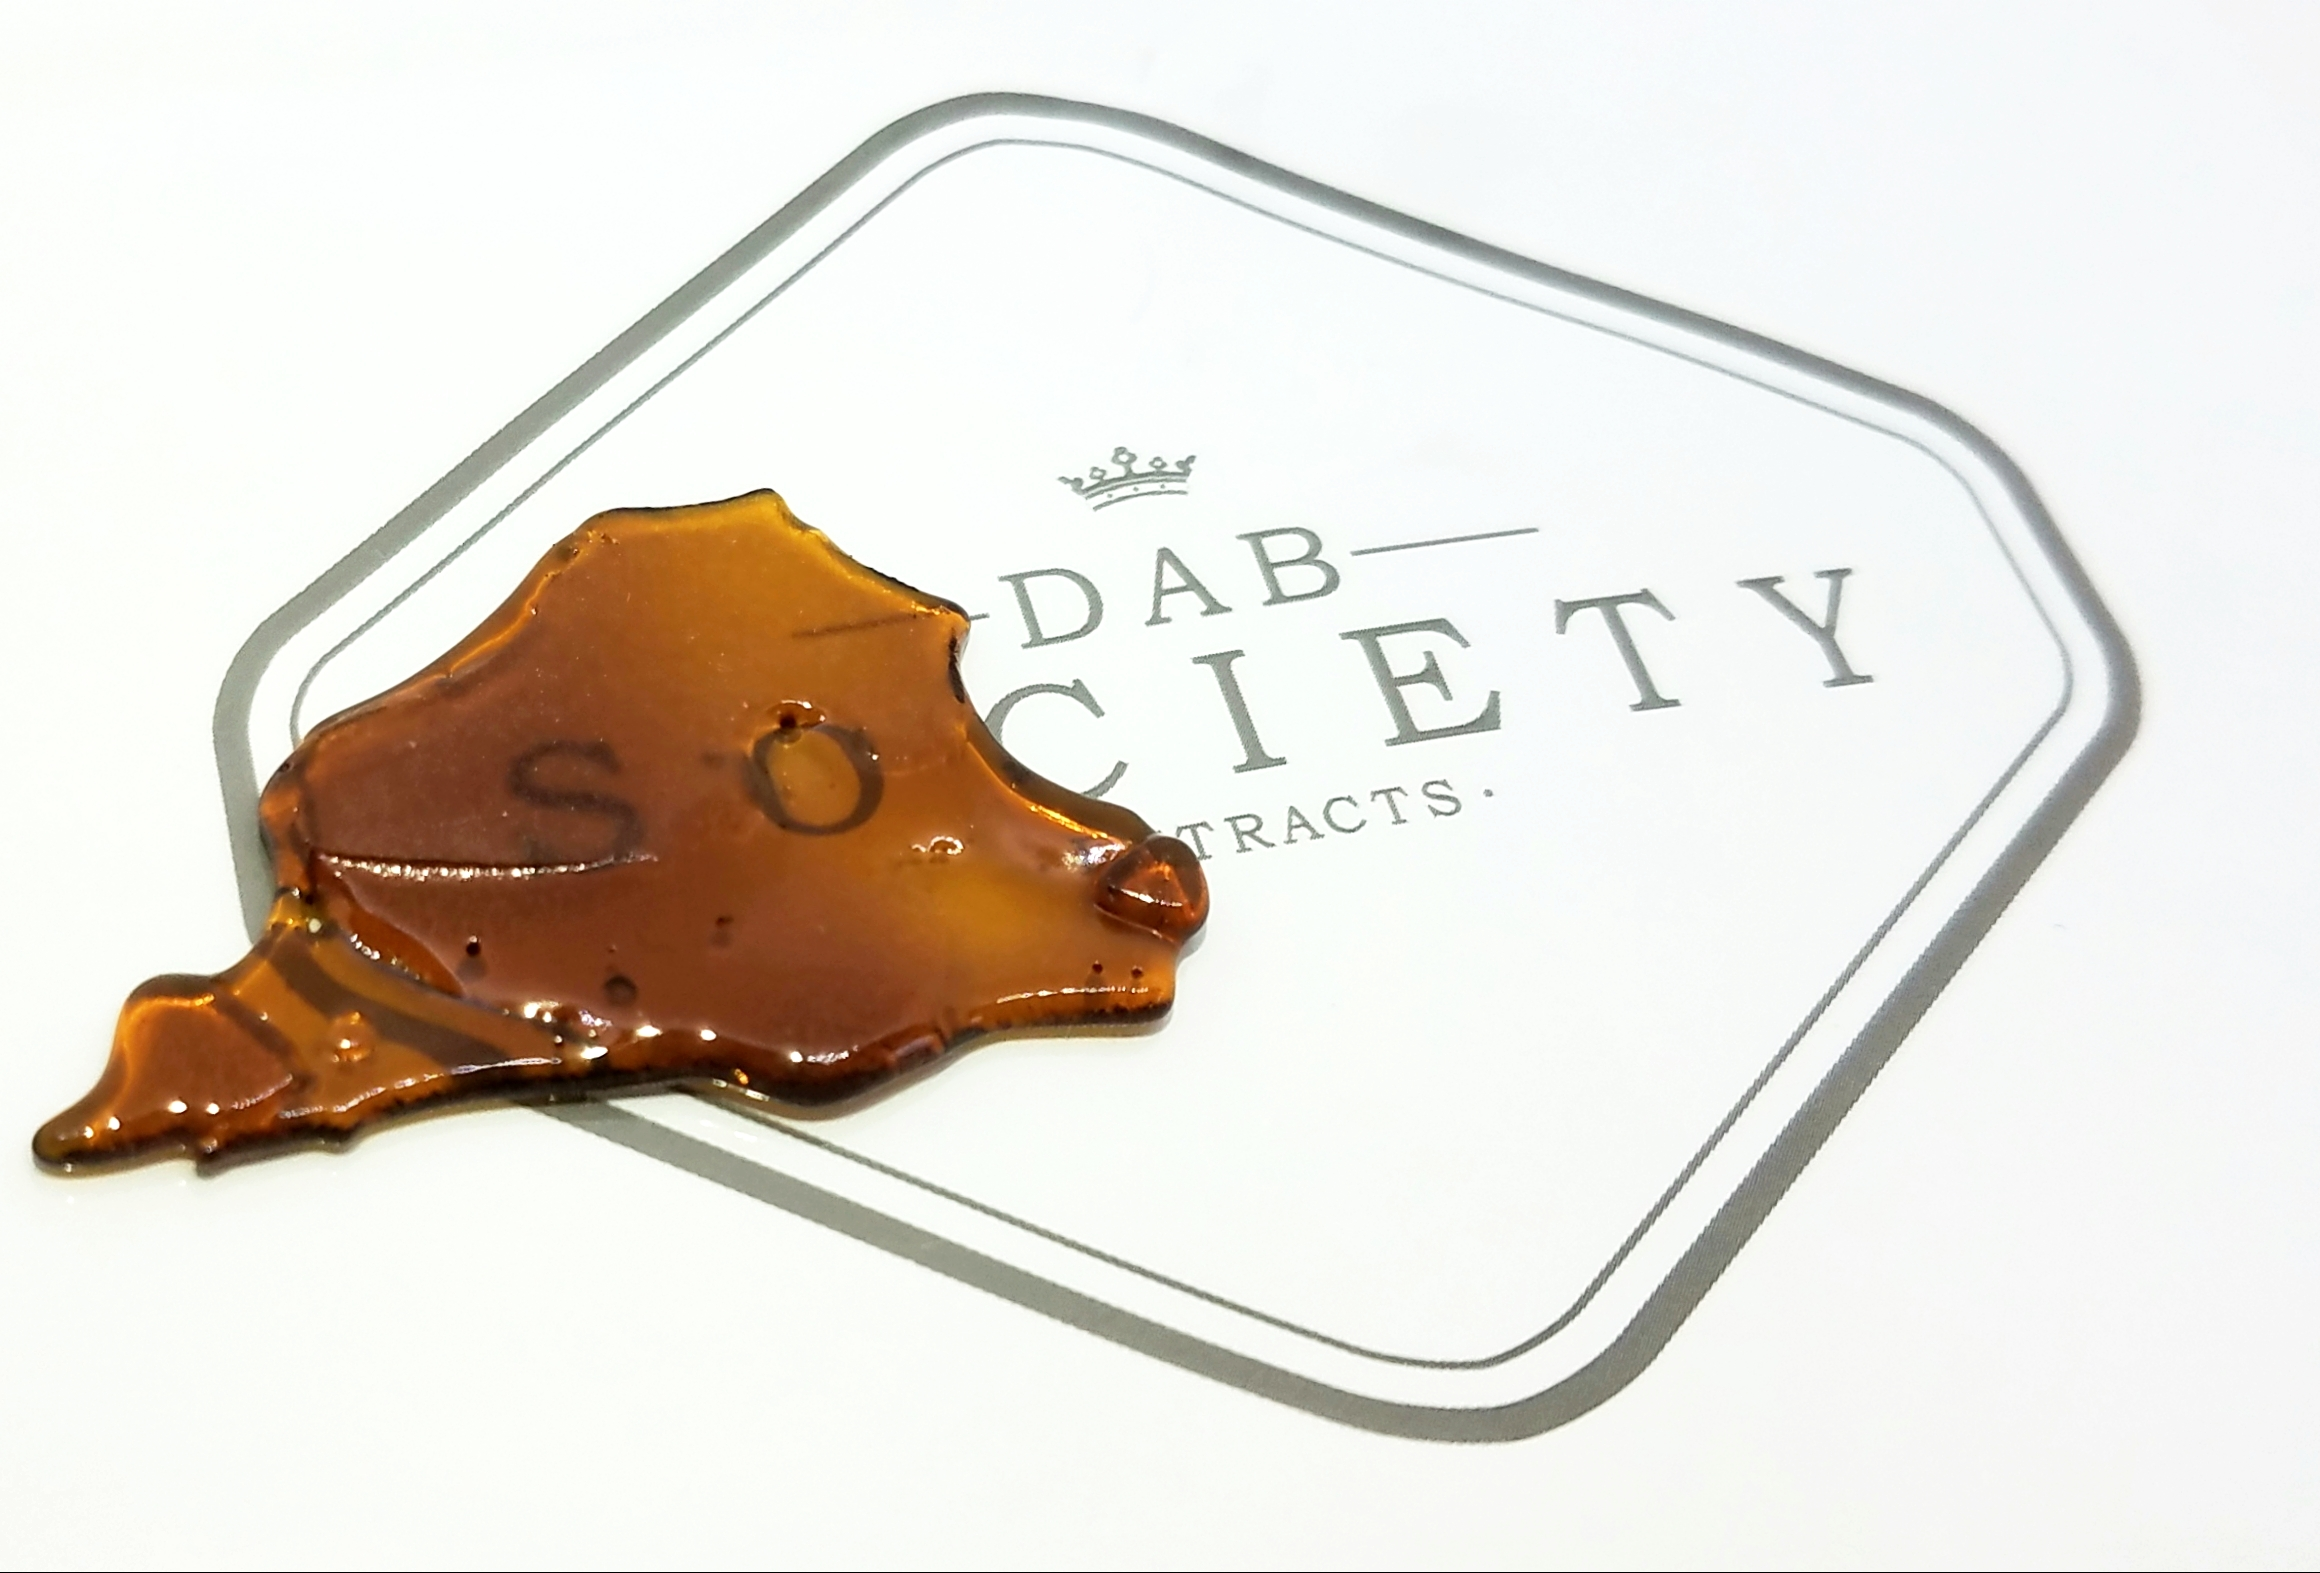 Silver Hawk produced by Dab Society. Extract made from flower grown by Yerba Buena.